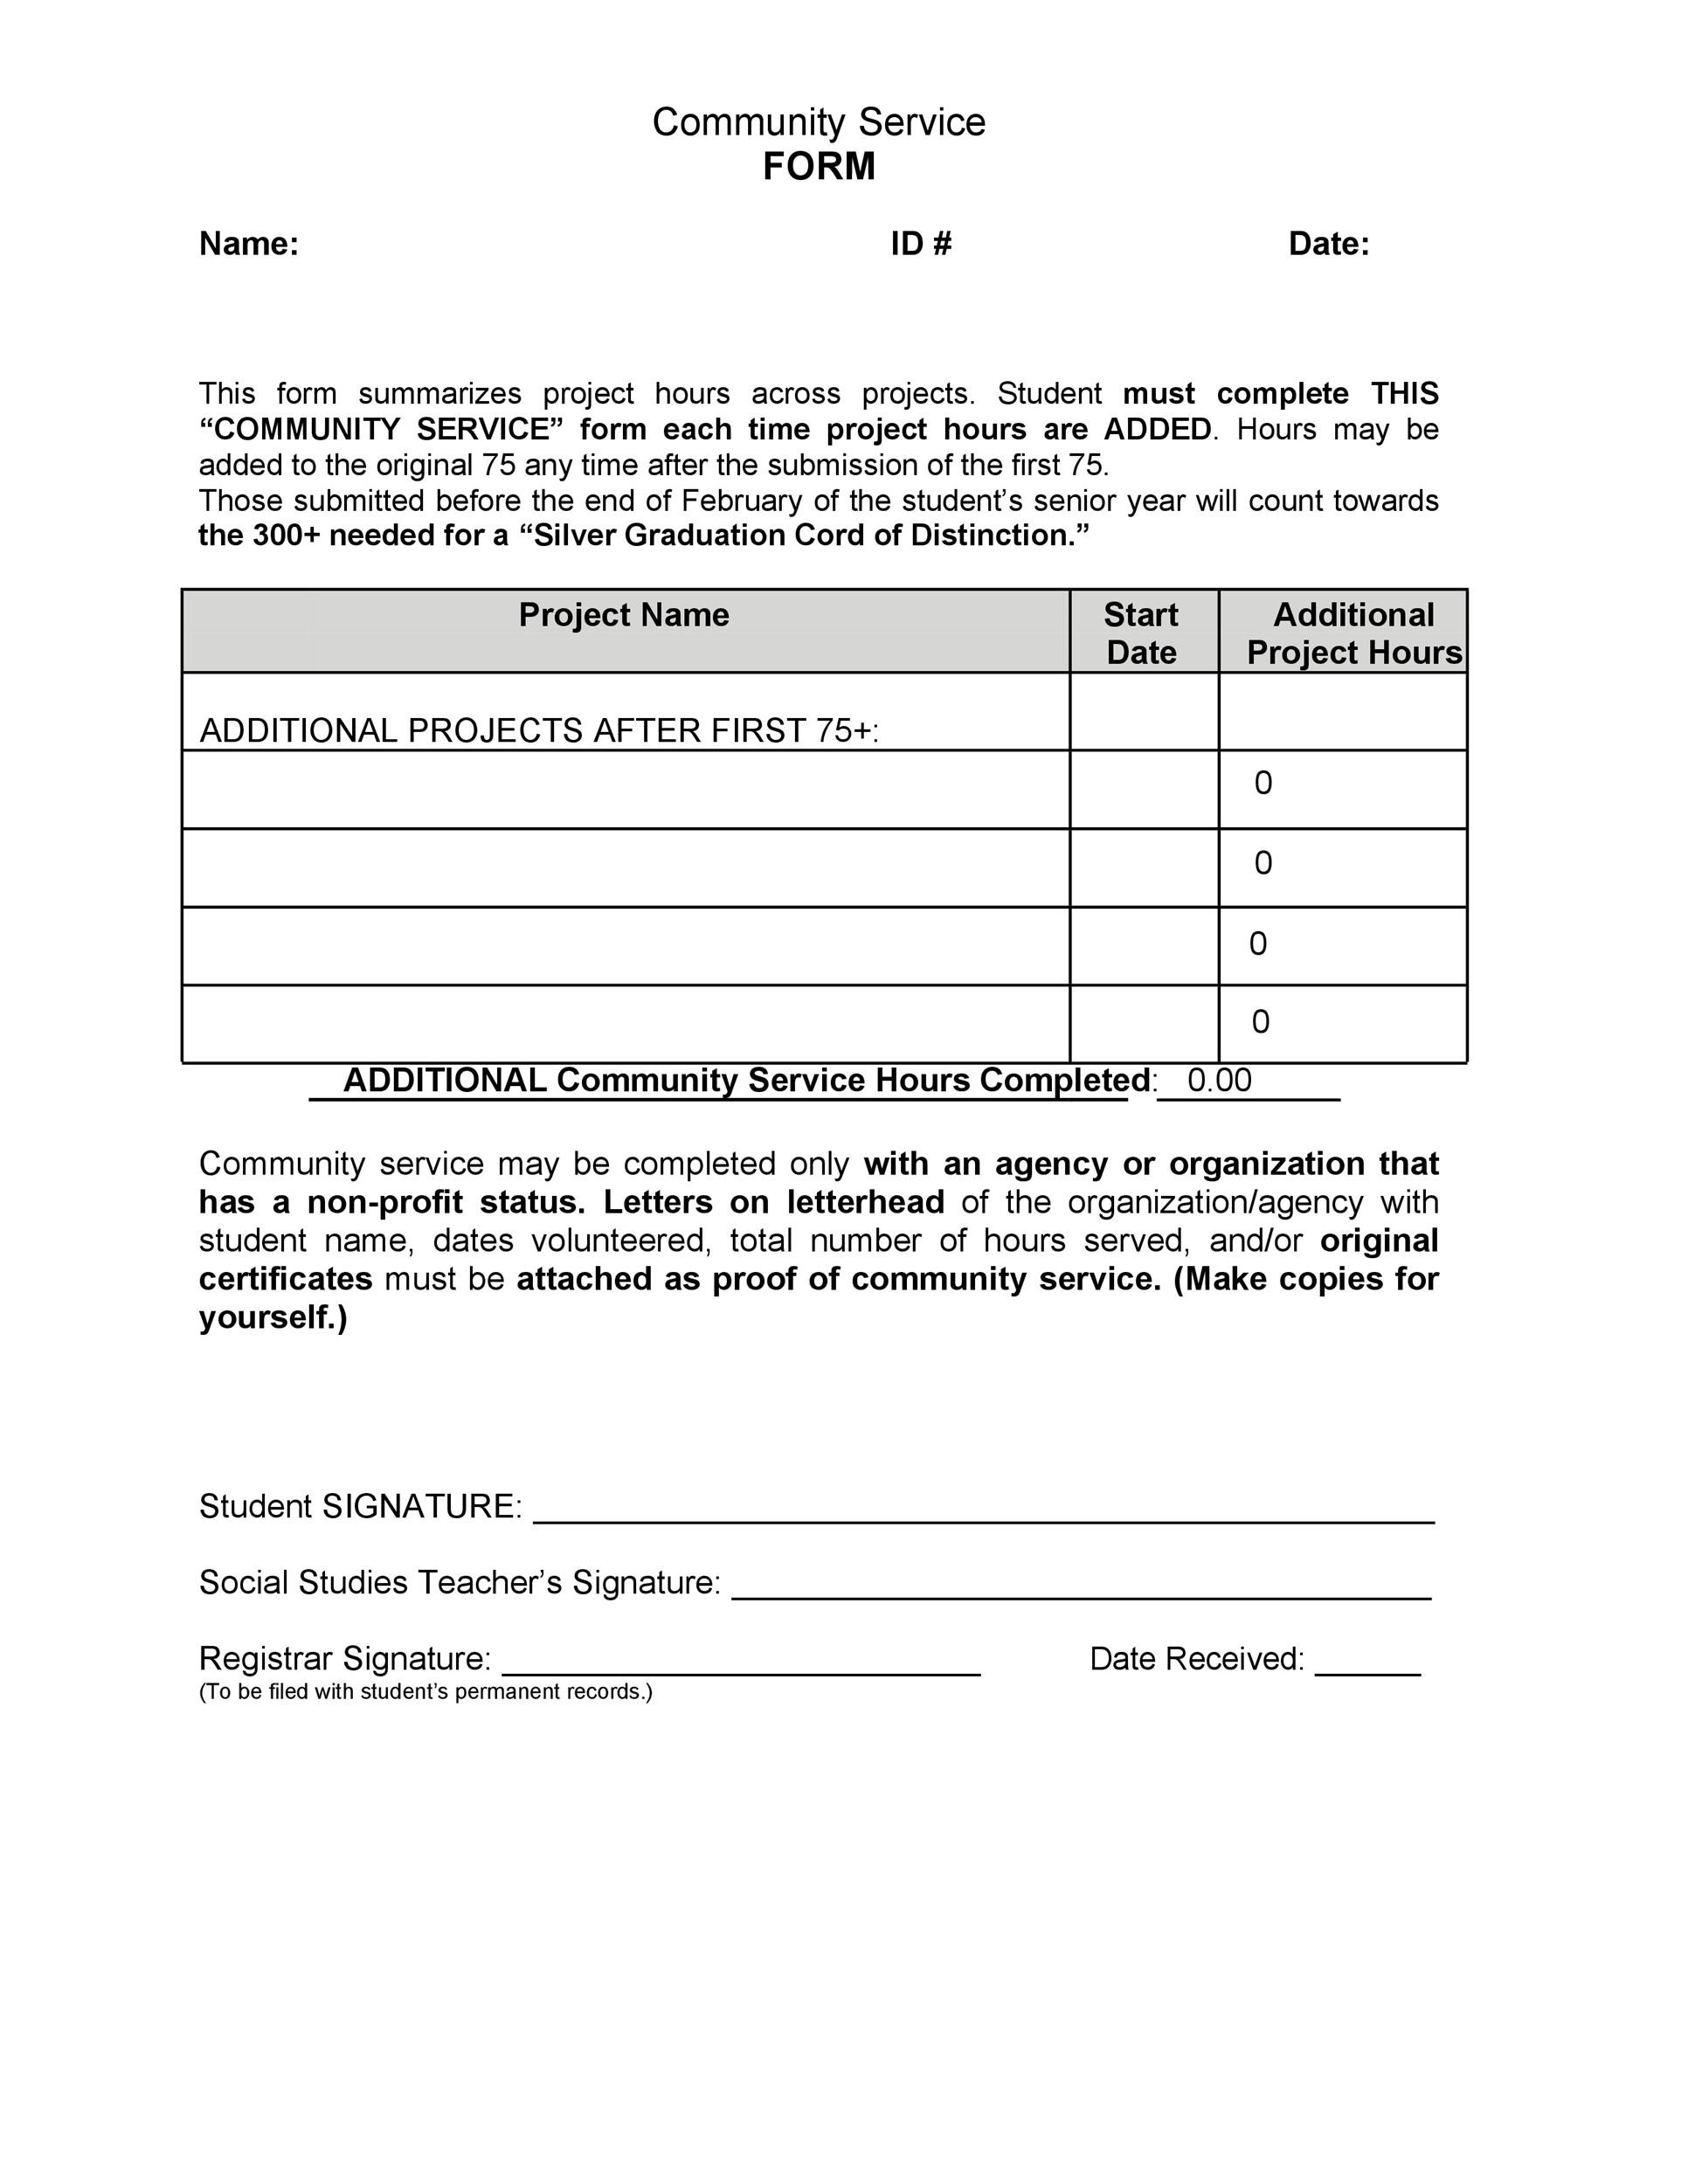 Community service letter 40 templates completion verification printable community service letter template 28 yadclub Images